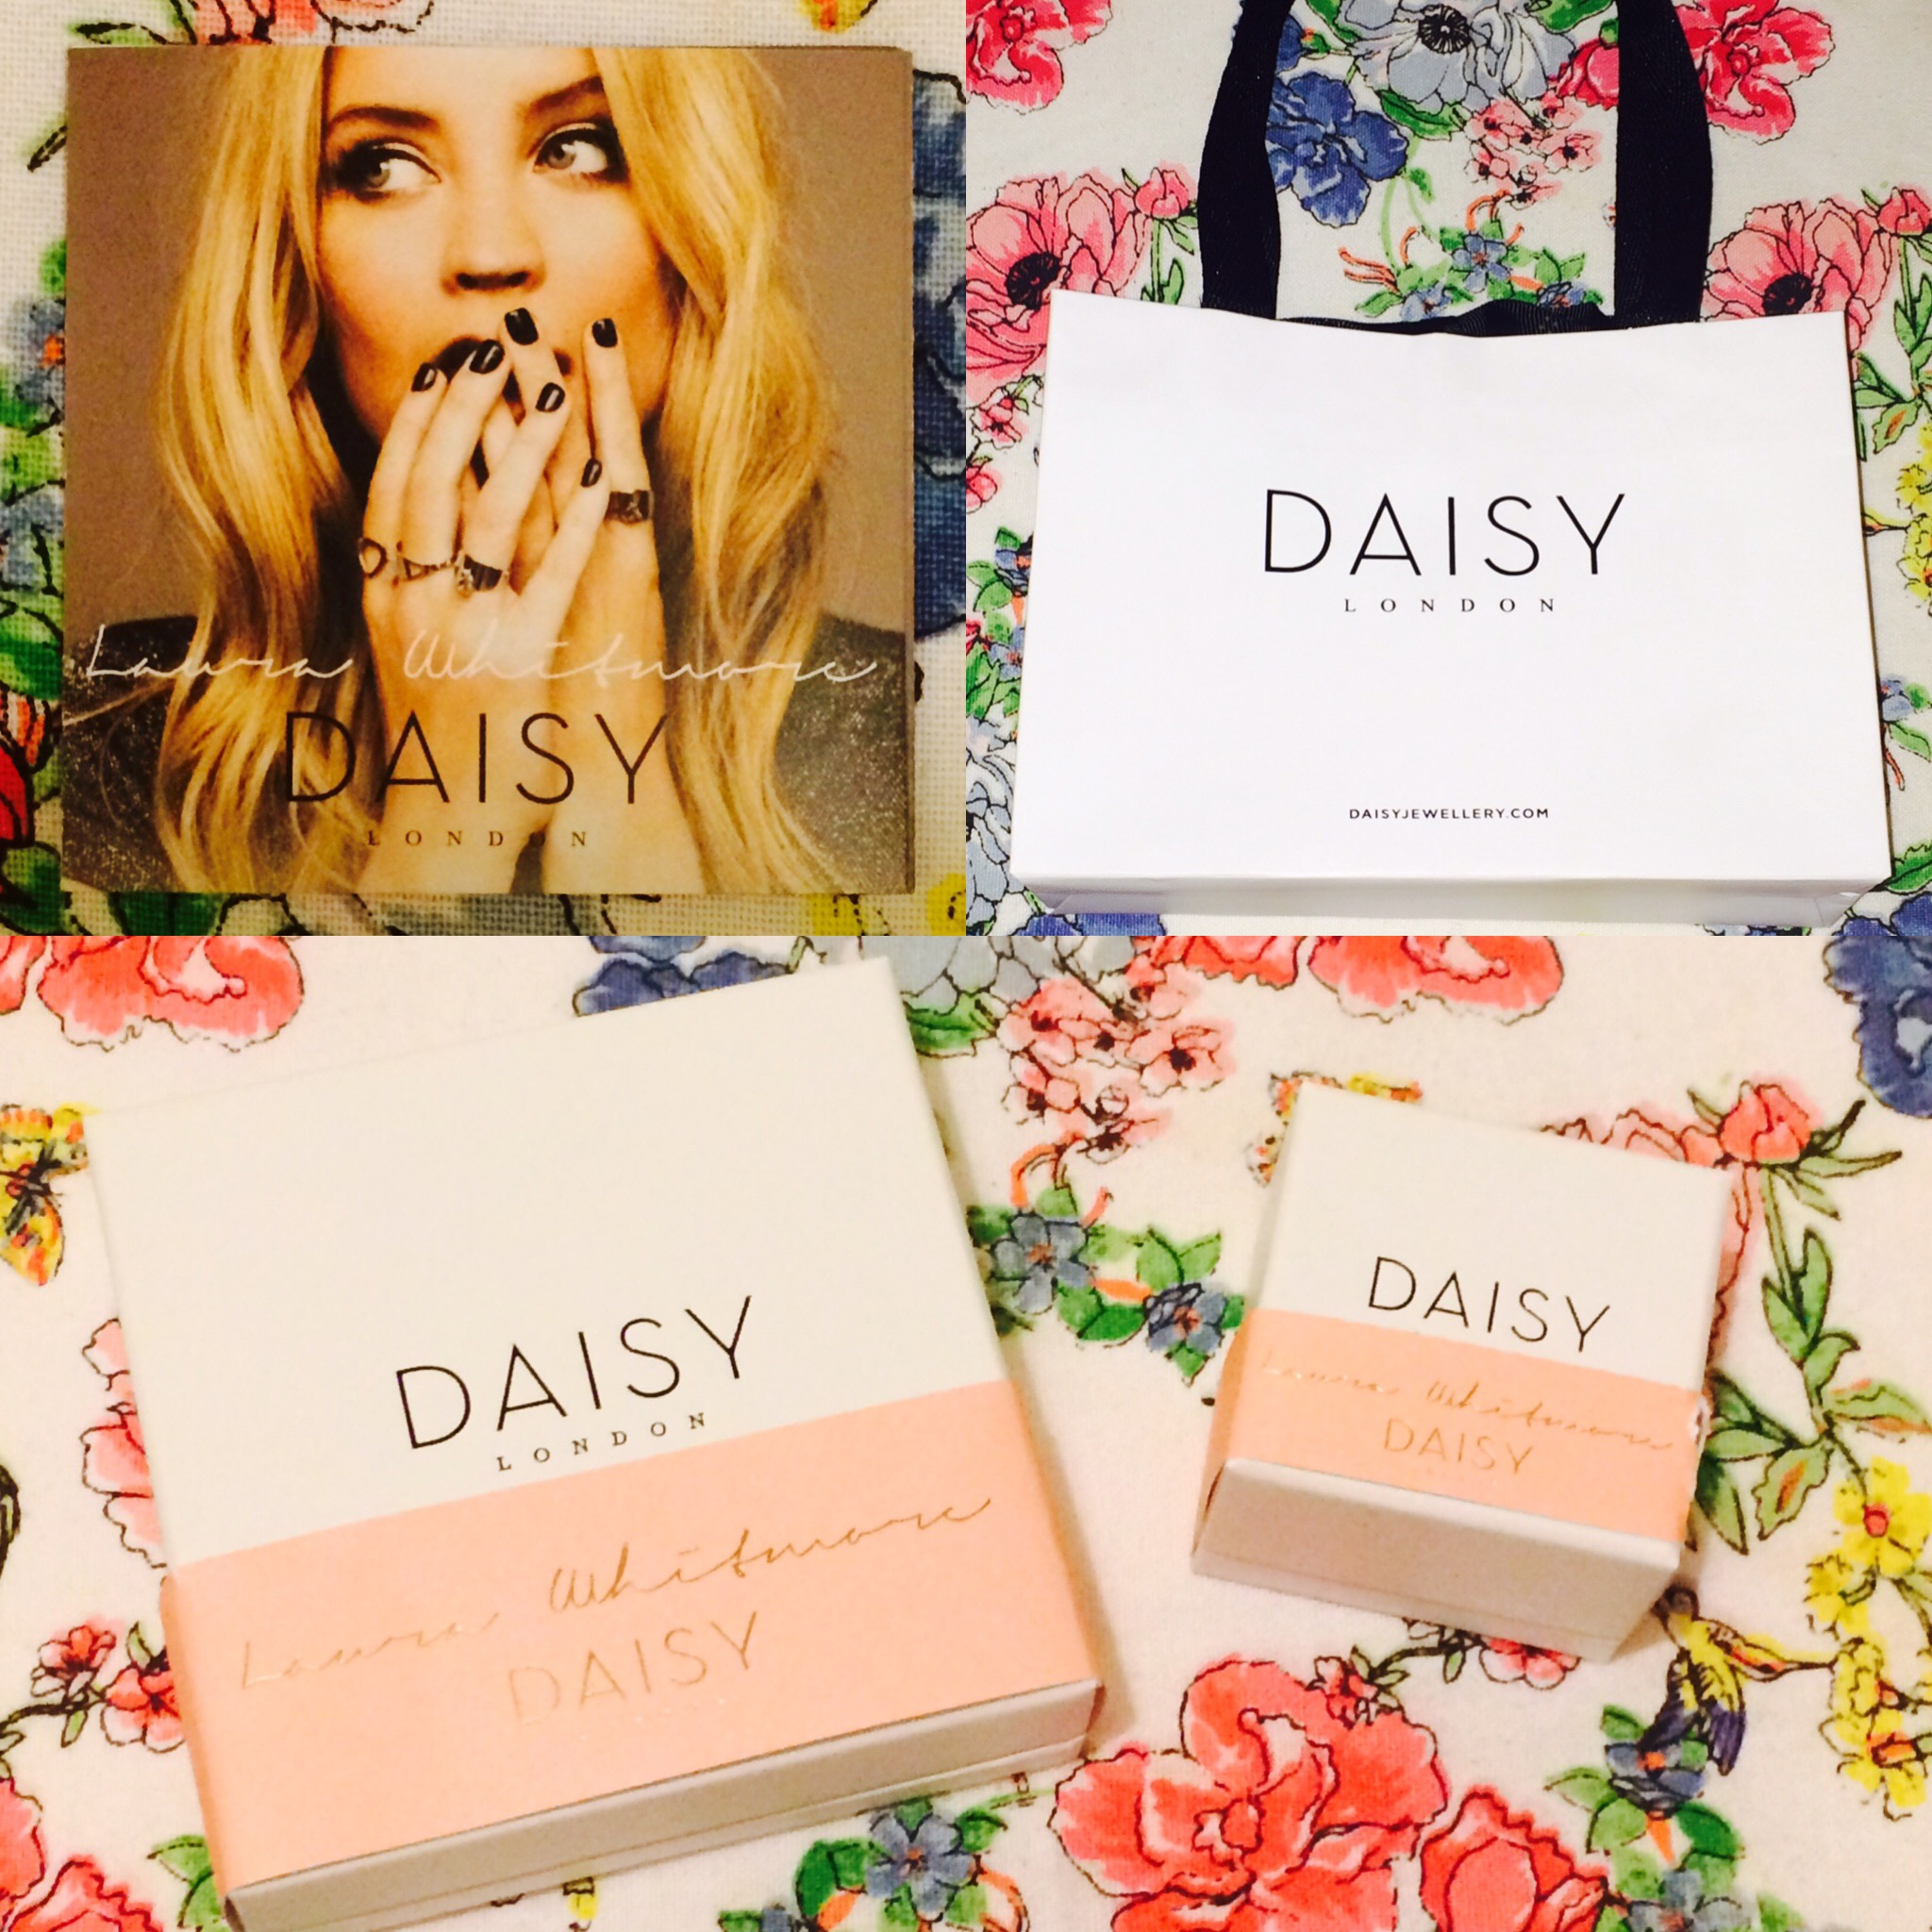 Laura Whitmore x Daisy London collection